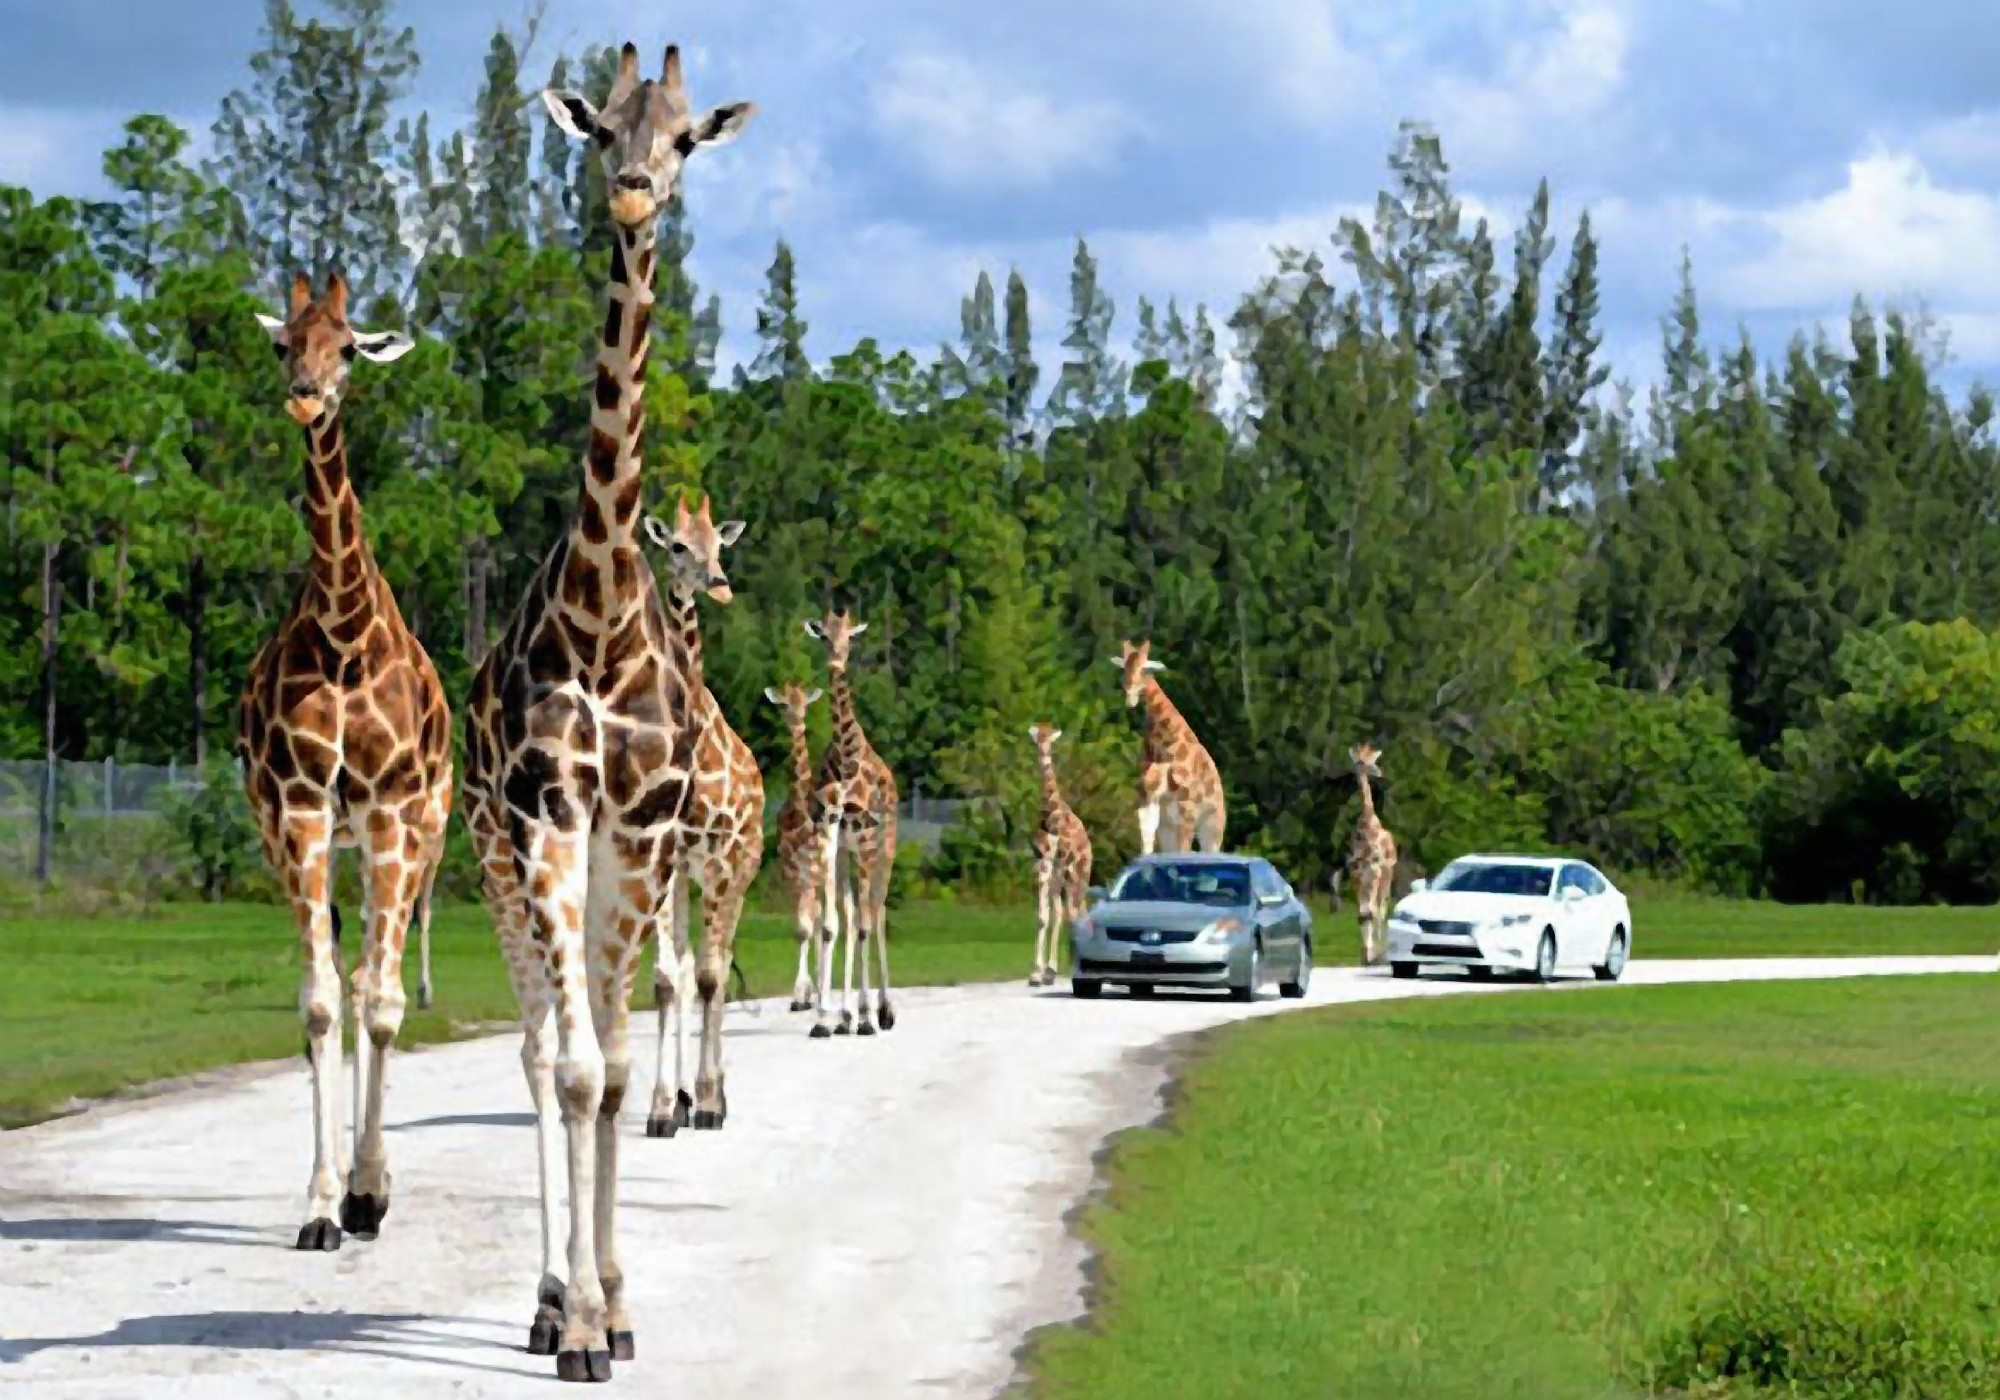 Things every South Floridian should do once - Lion Country Safari in Loxahatchee